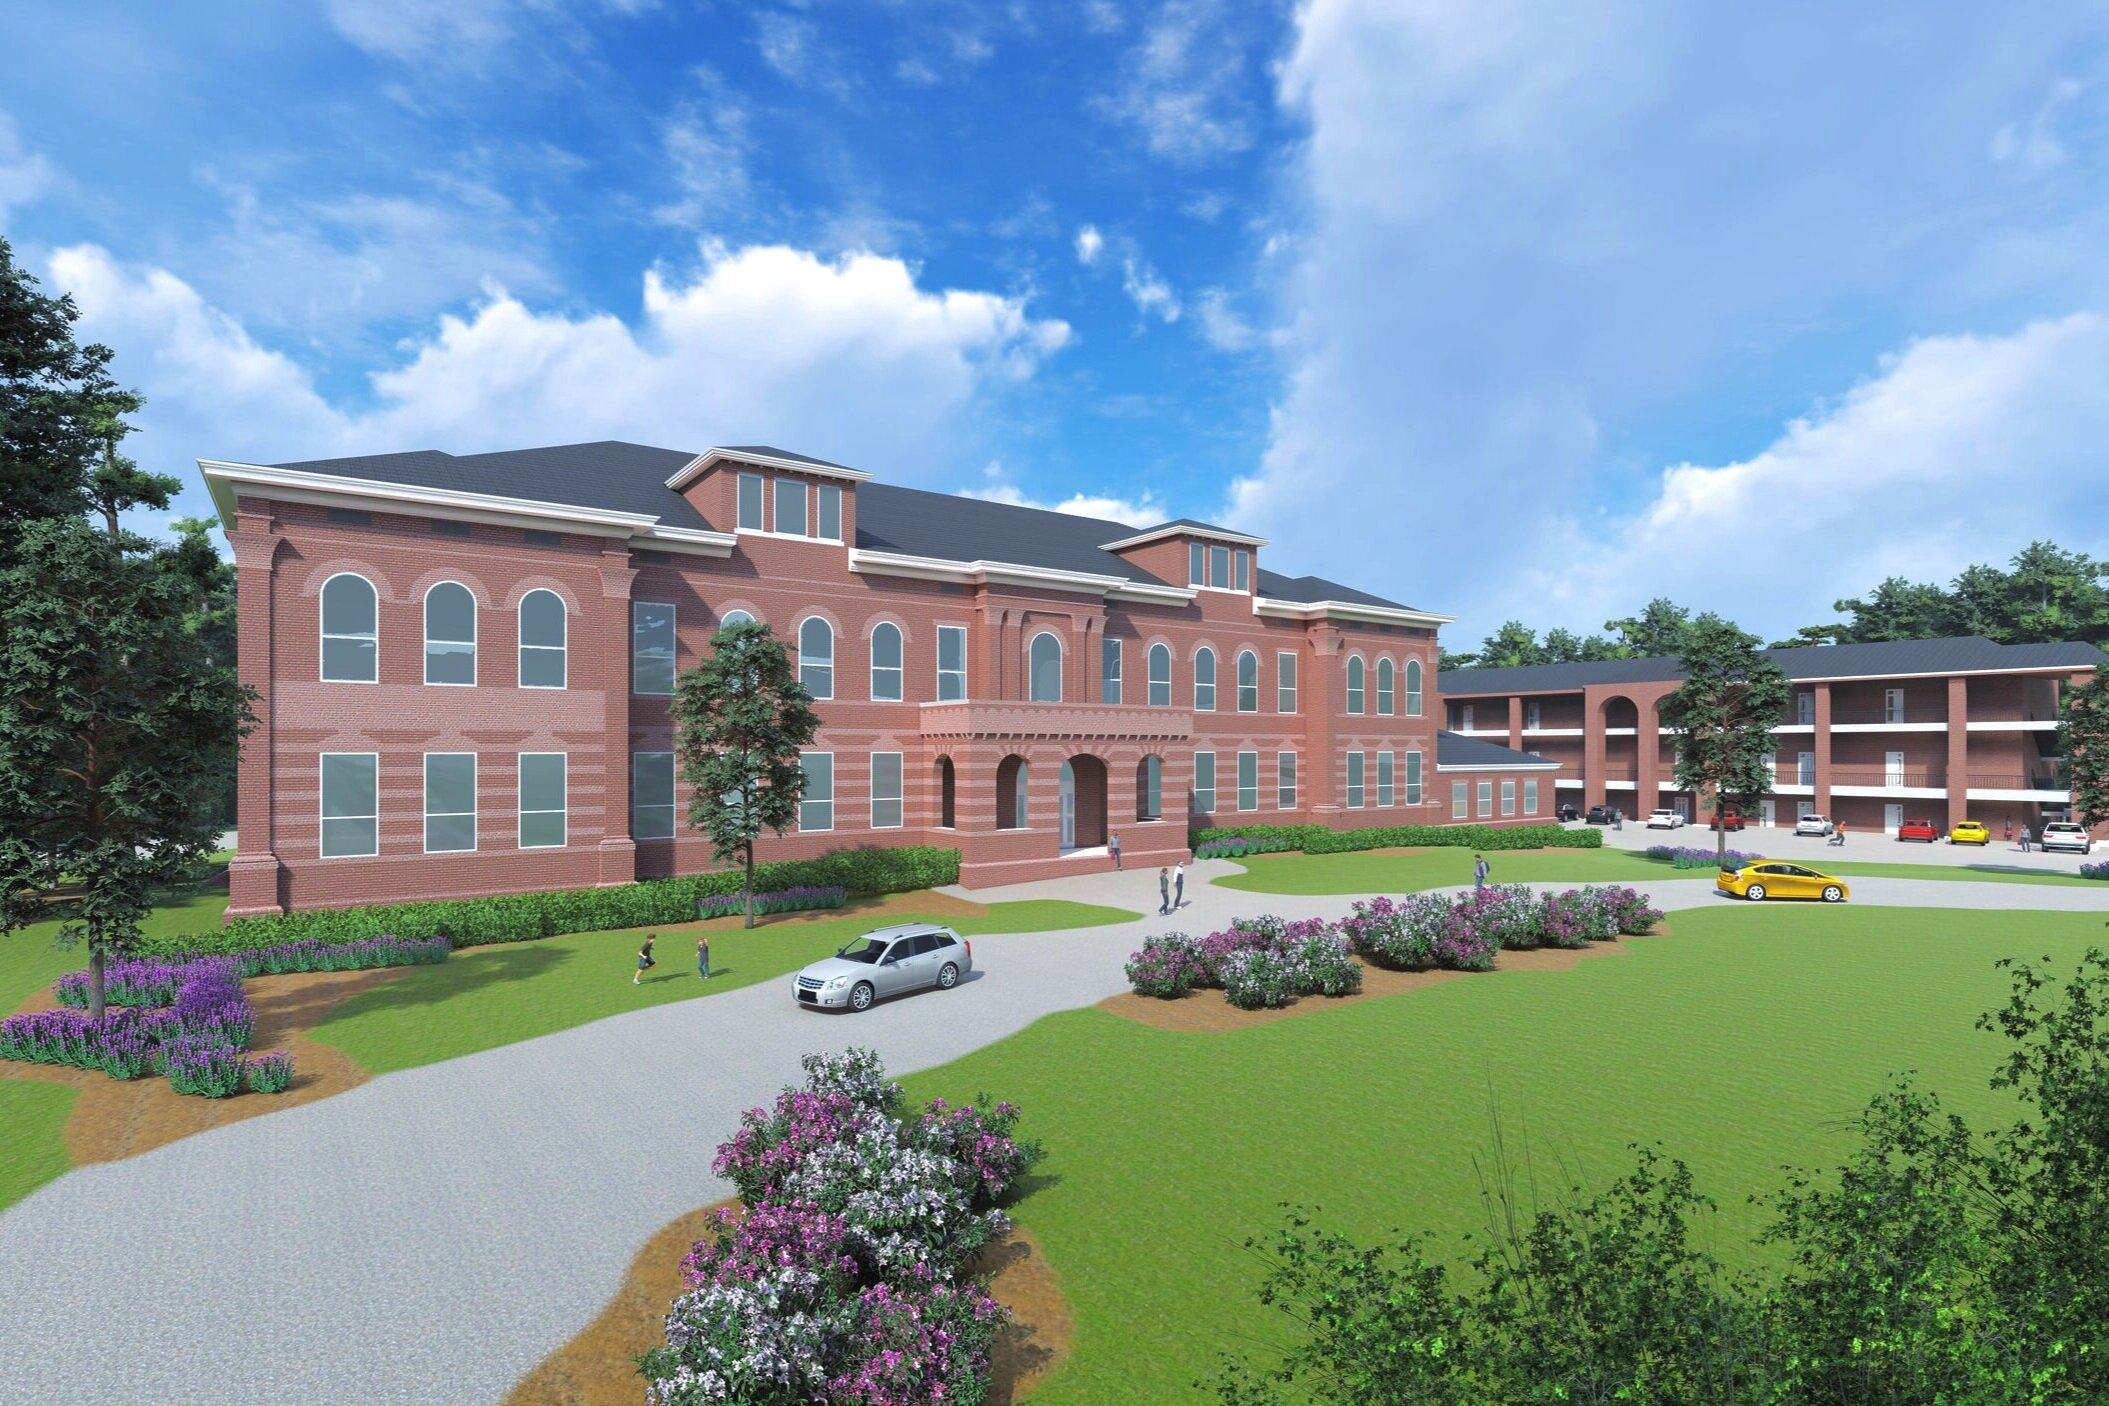 Rendering of Historic Howell School Renovation and Adaptive Reuse